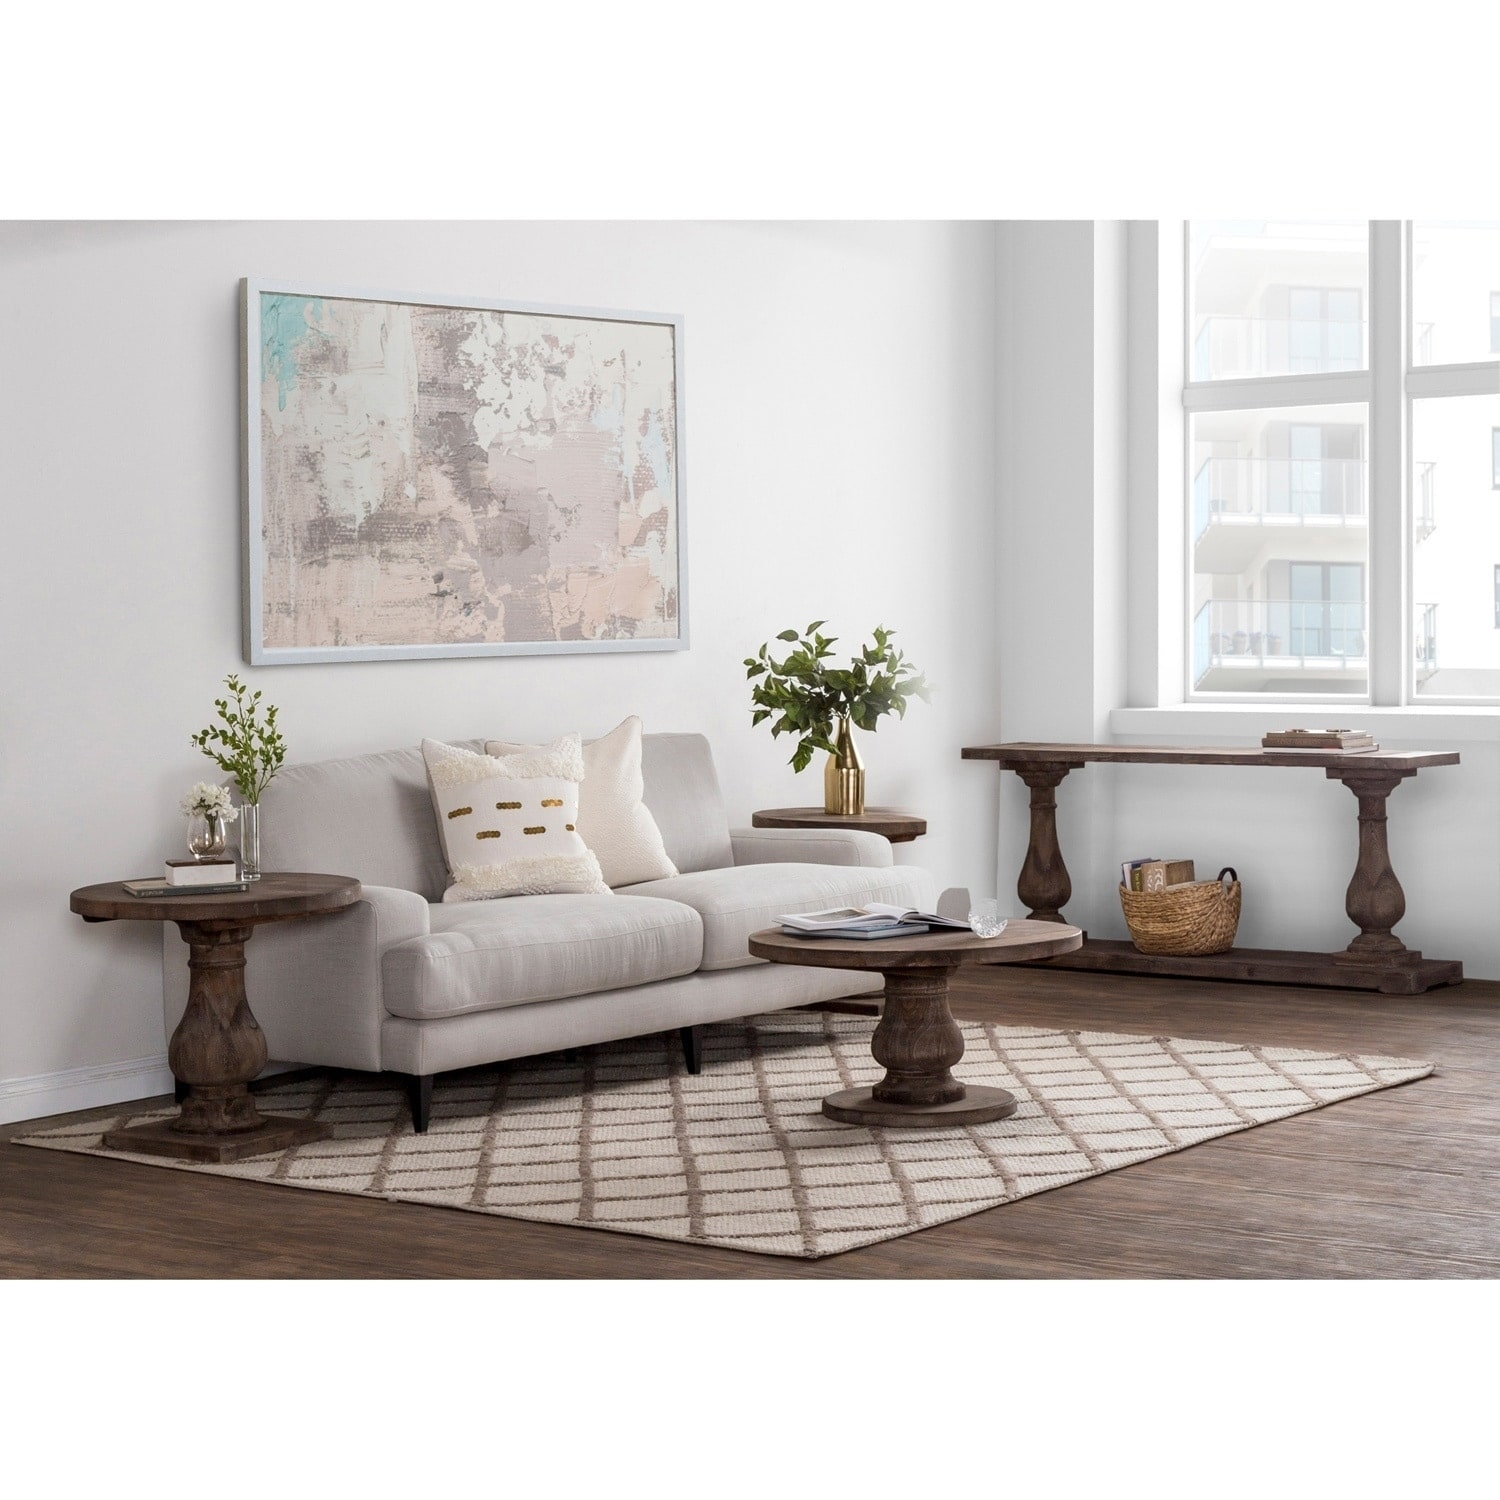 Shop carolina reclaimed wood round coffee table by kosas home on sale free shipping today overstock com 11002590